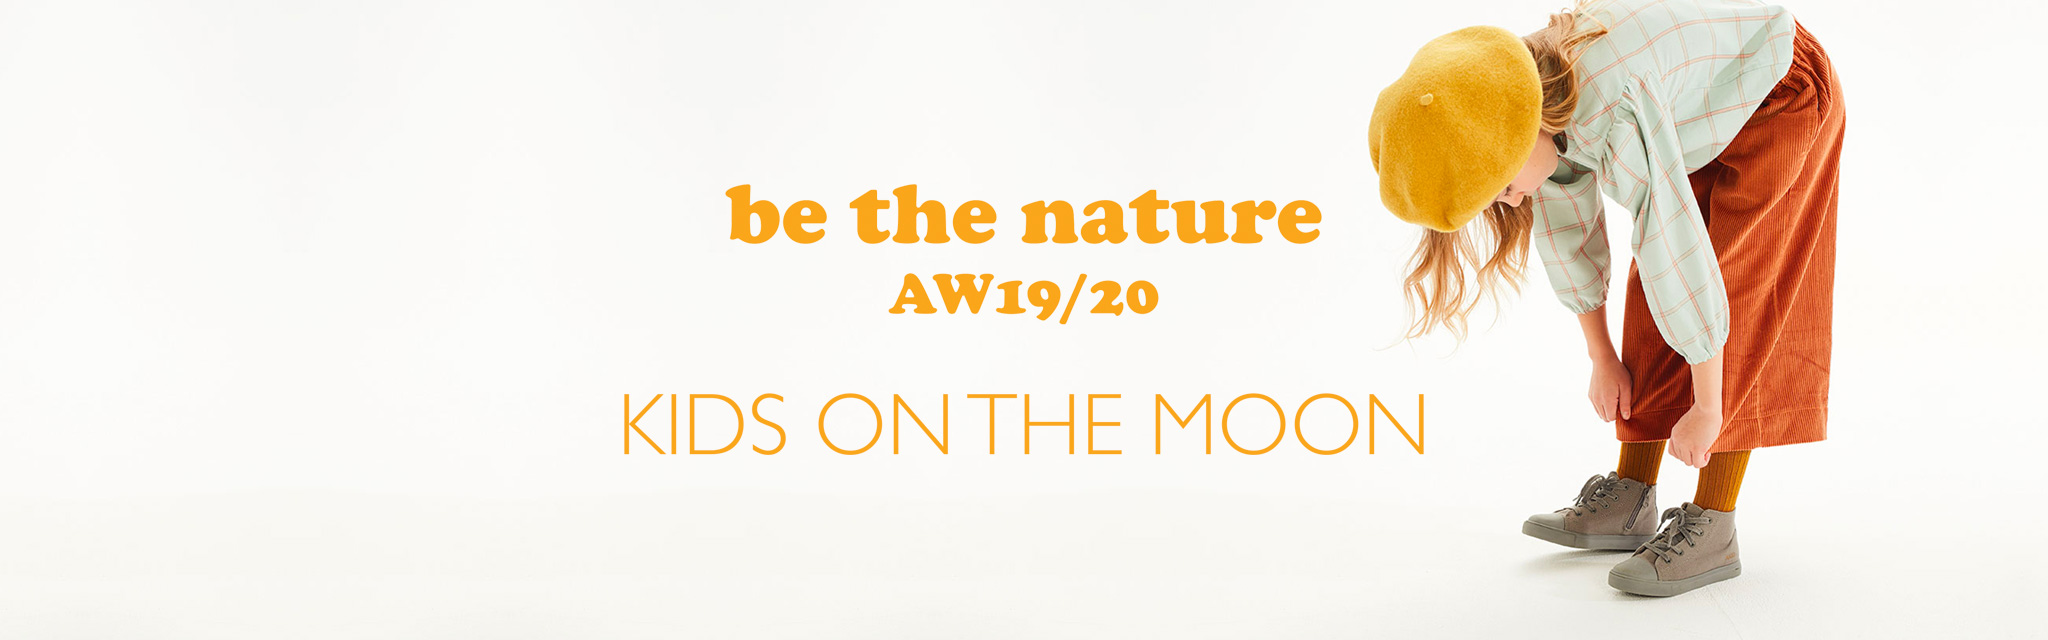 KIDS ON THE MOON 19AW be the nature